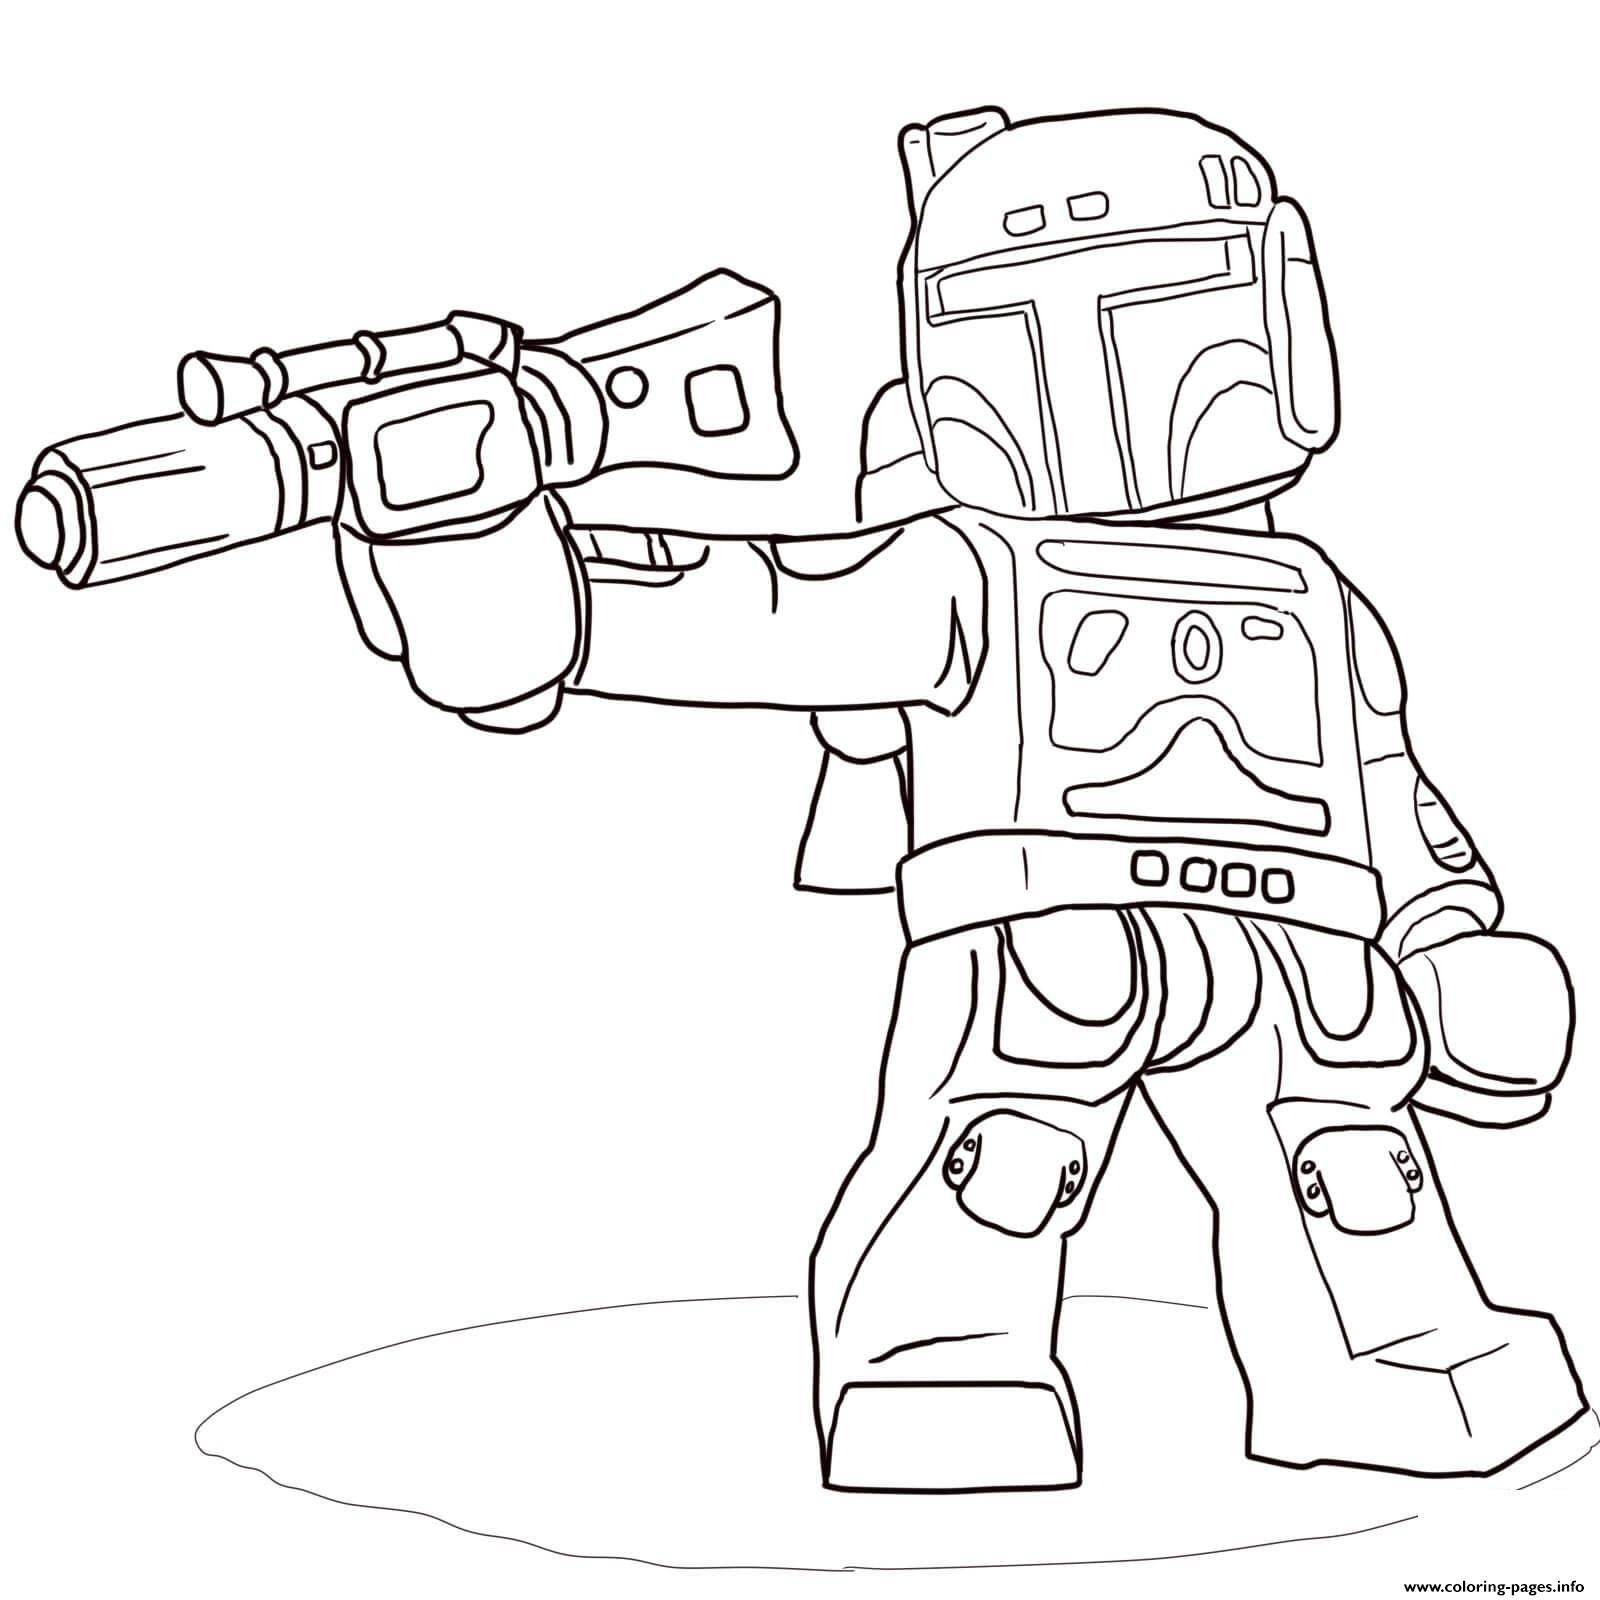 Lego Star Wars Boba Fett Coloring Pages Printable Collection